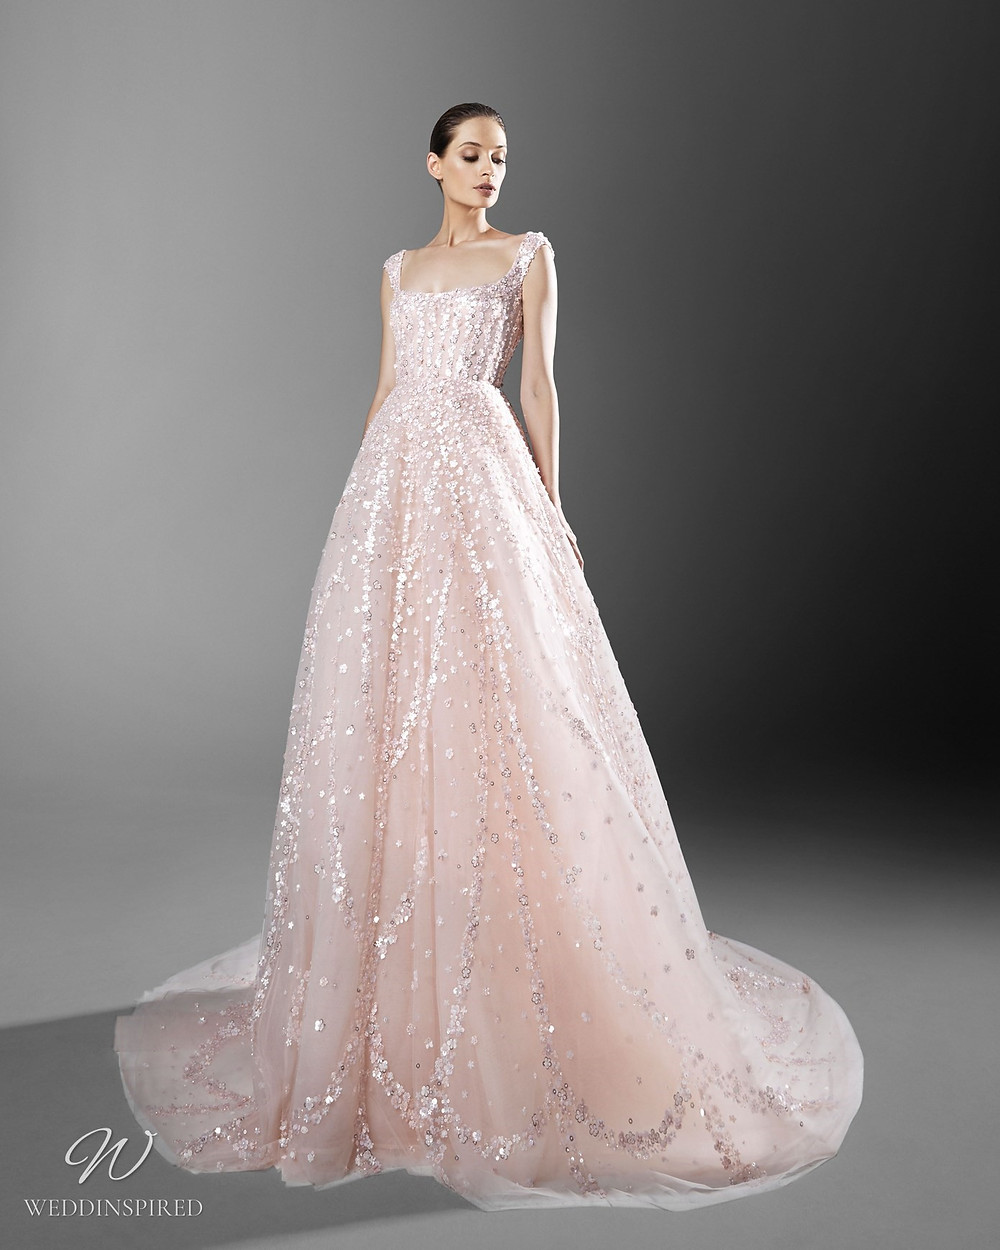 A Zuhair Murad romantic blush ball gown wedding dress with crystals and sparkles